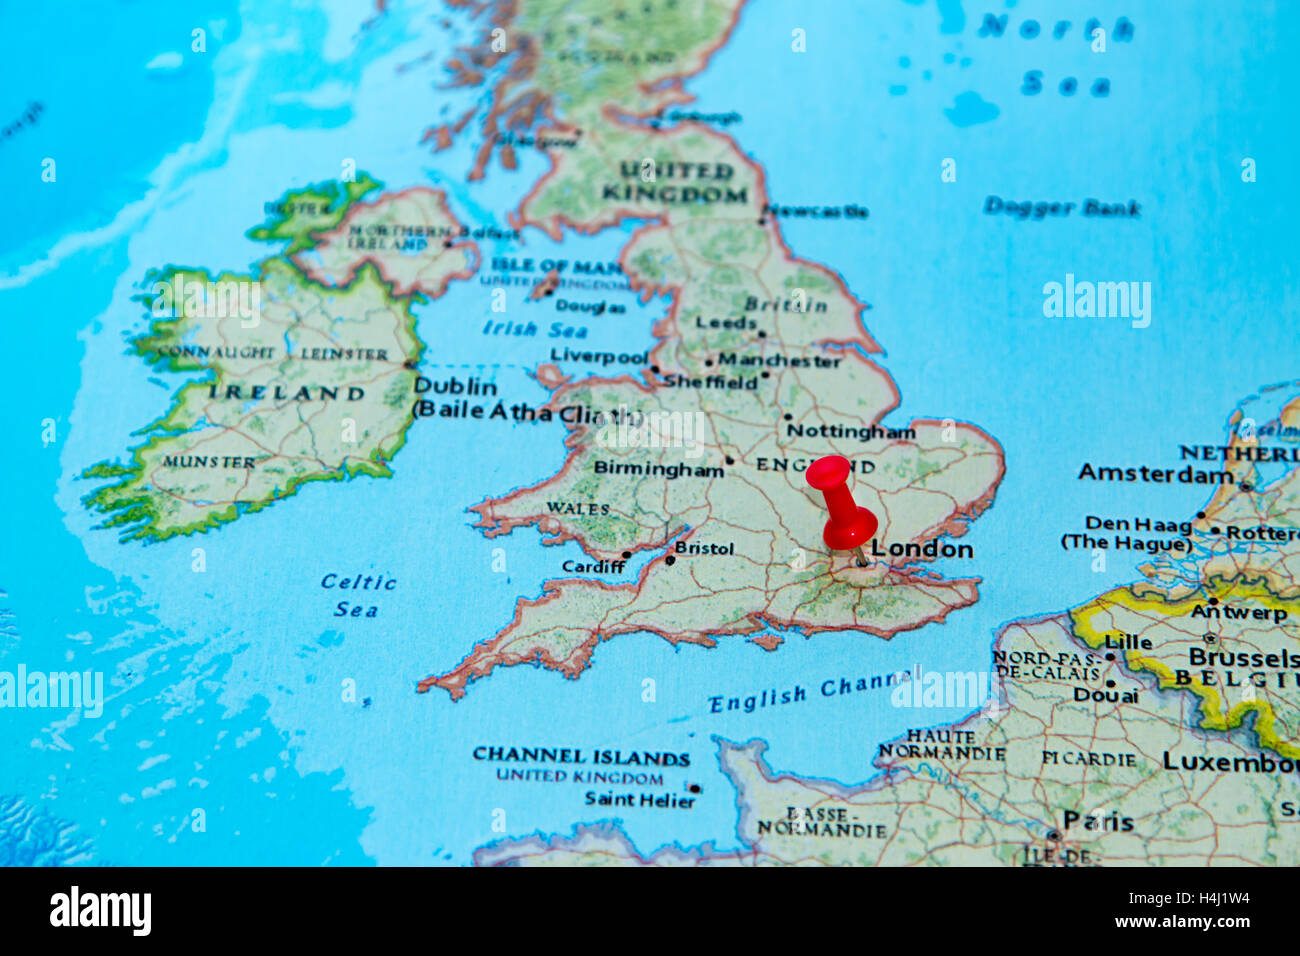 London UK pinned on a map of